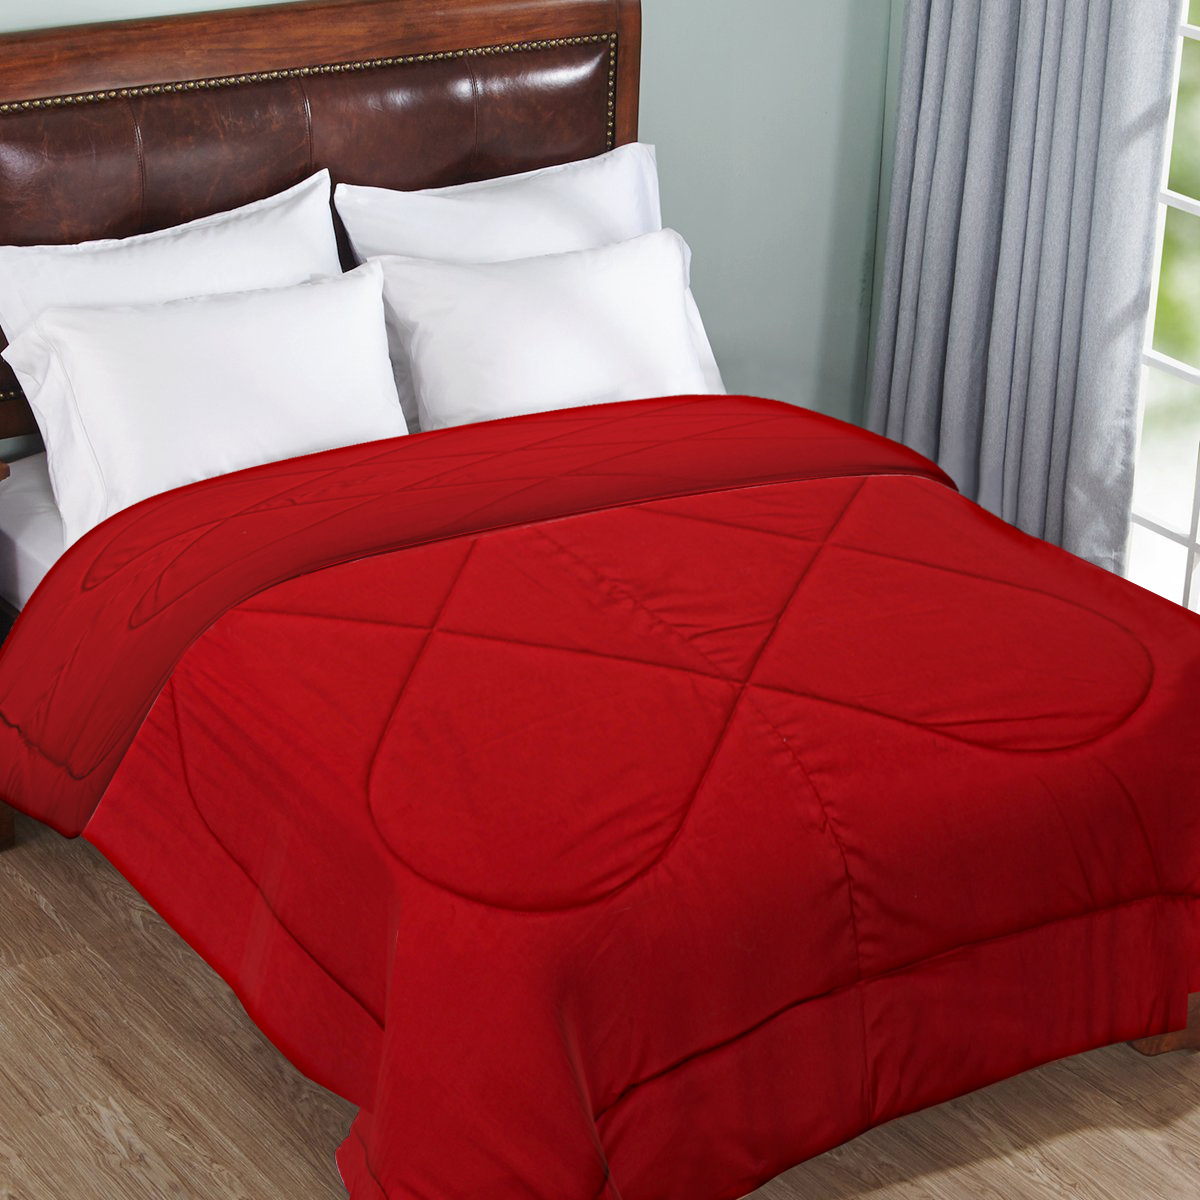 Kuber Industries Microfibre Reversible Double Bed Comforter (Red),King Size-CTKTC3842